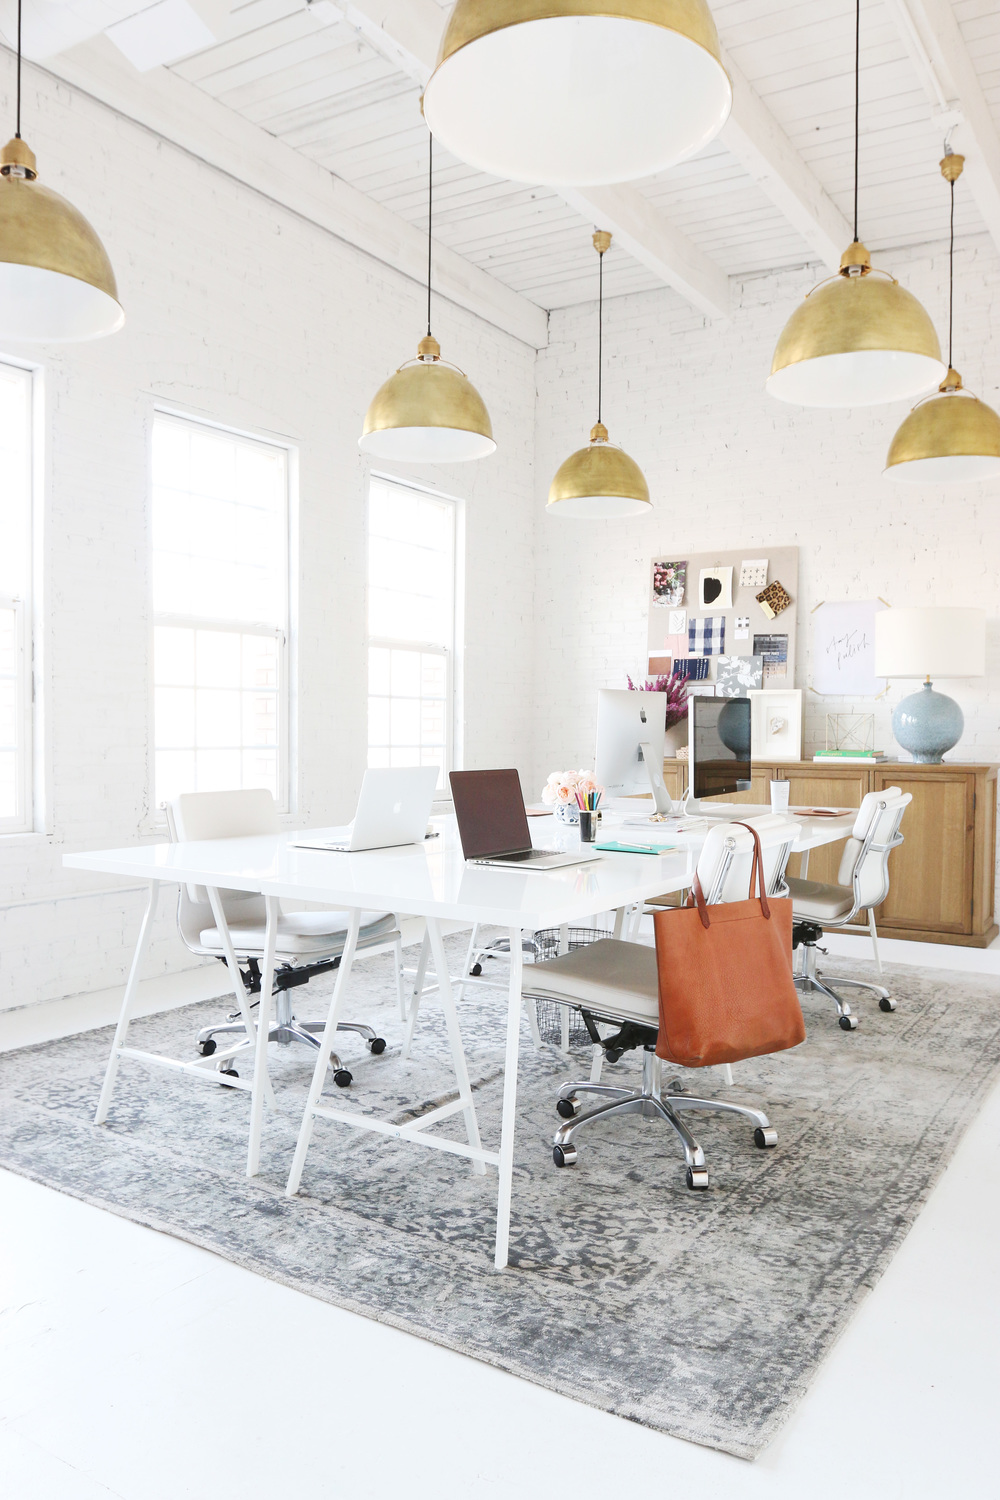 All-white office with golden lamps